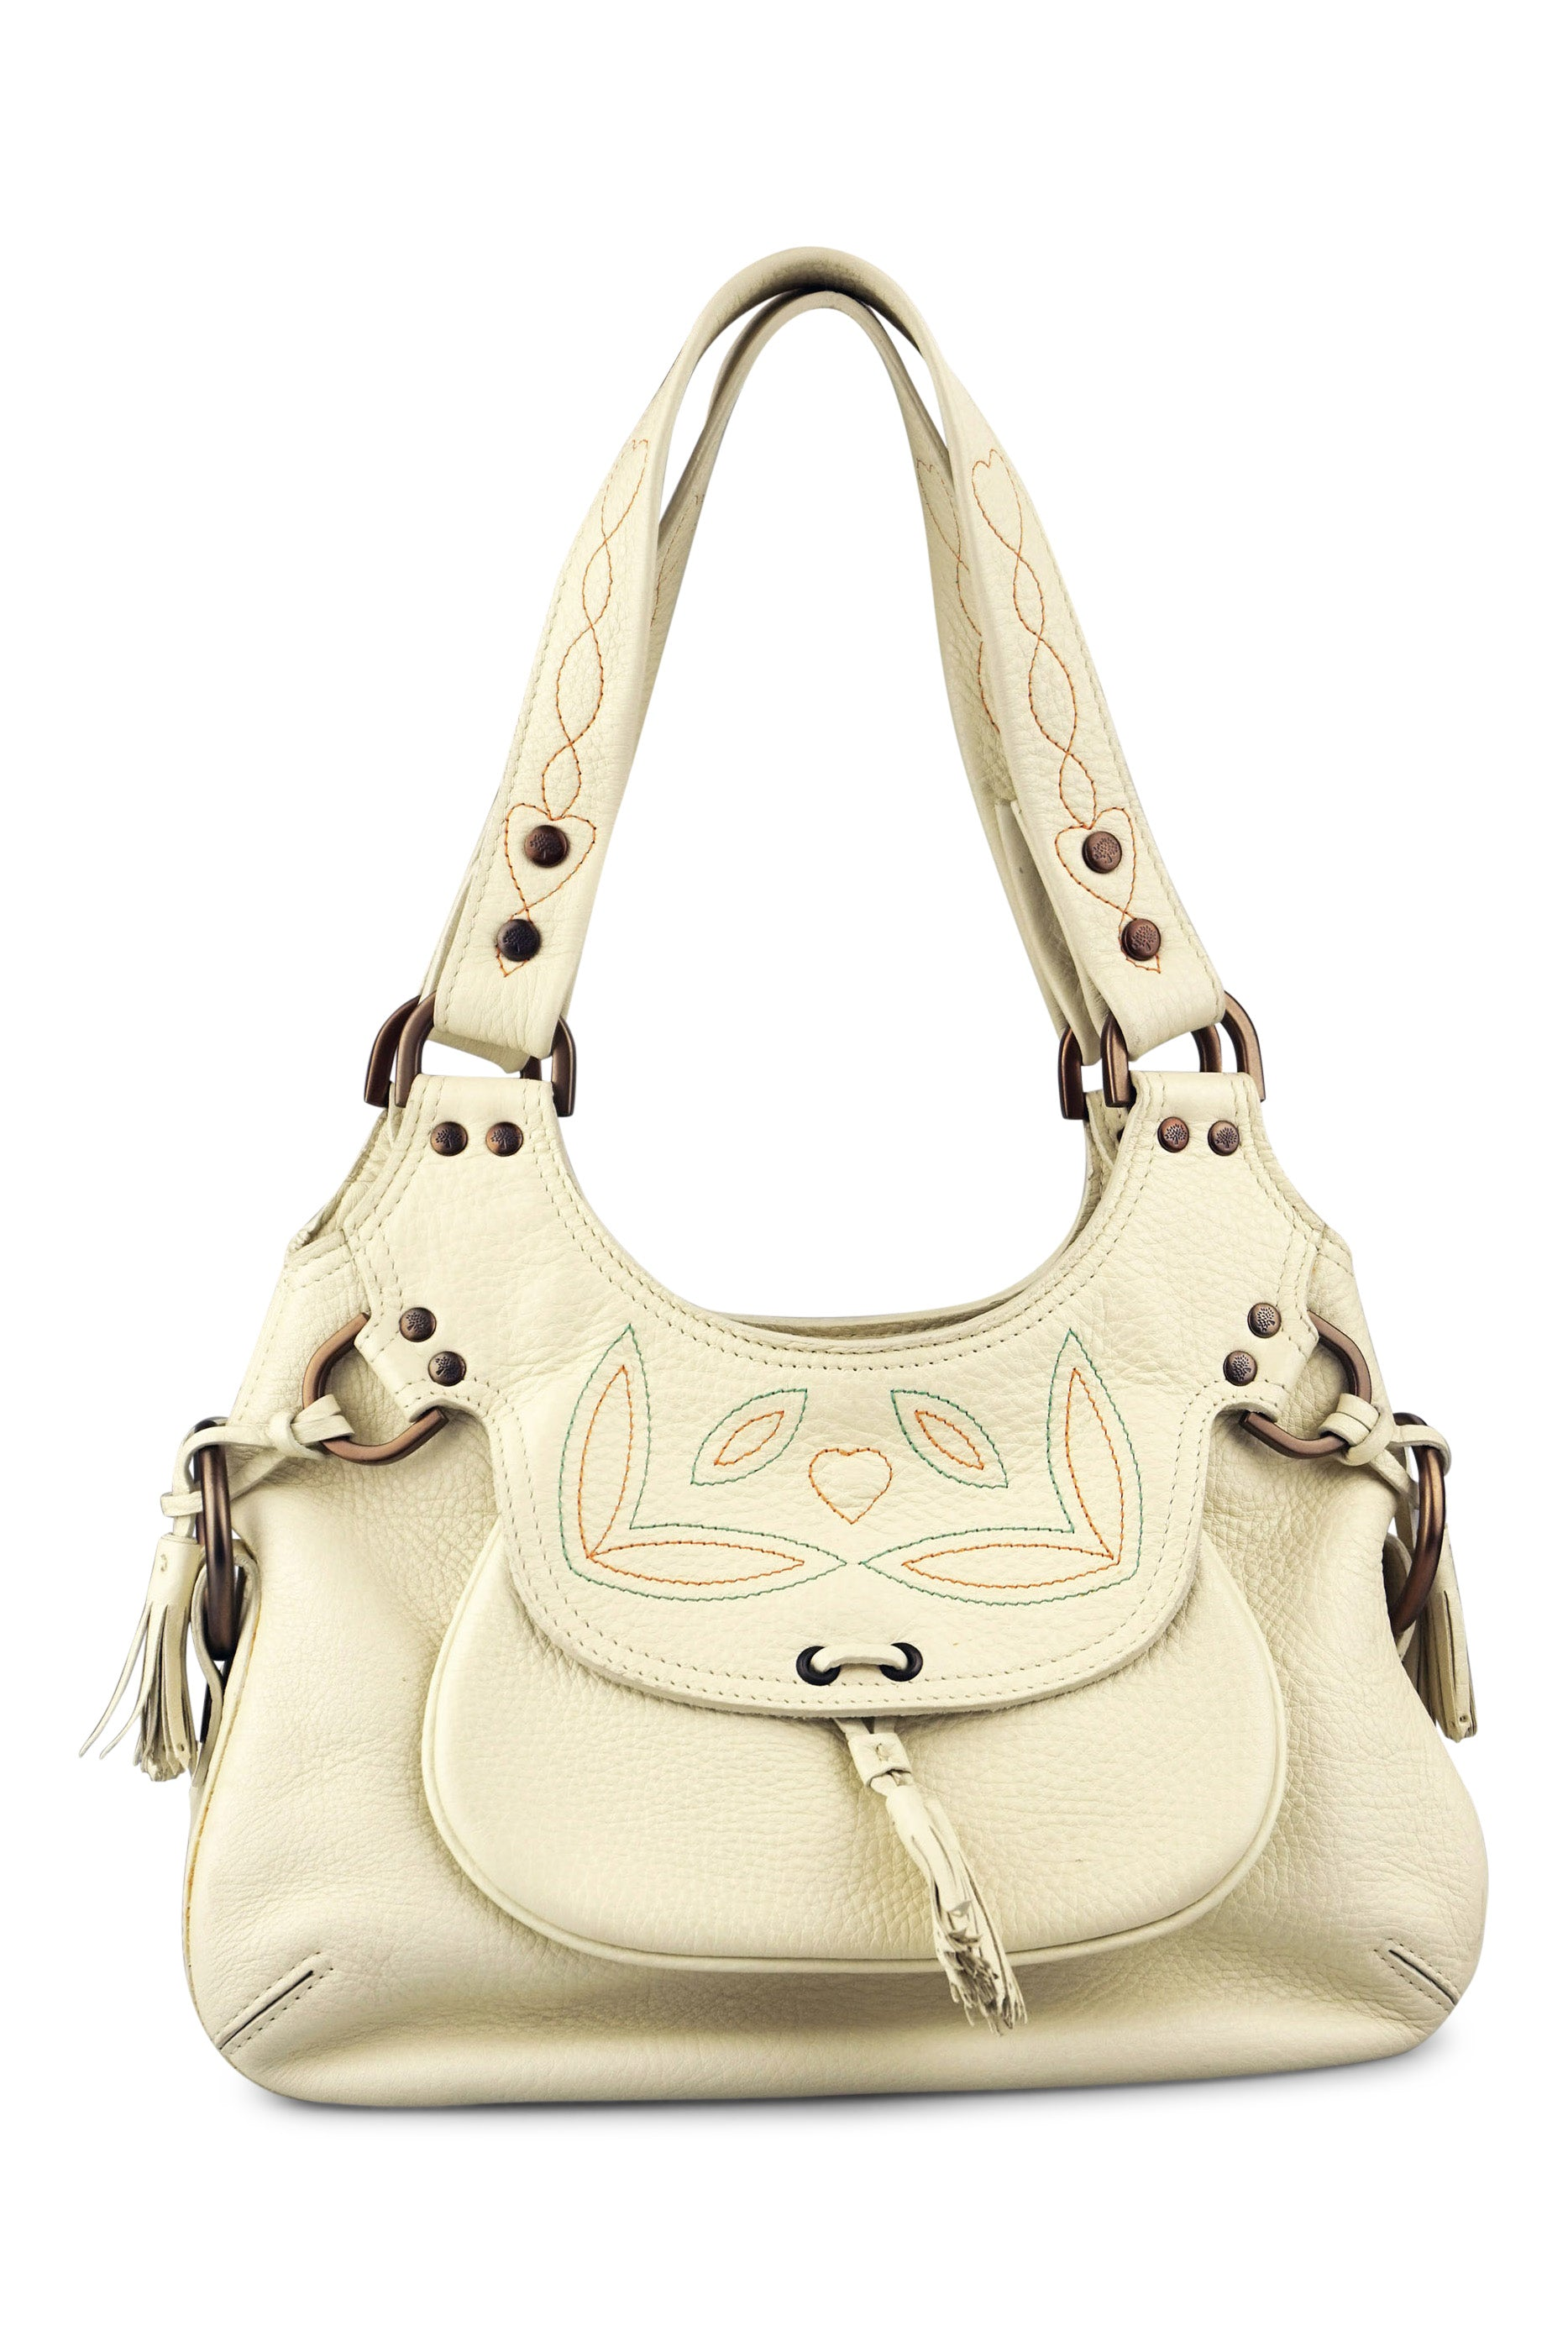 7e2a7ab300 Mulberry Phoebe cream tassel bag – Revoir